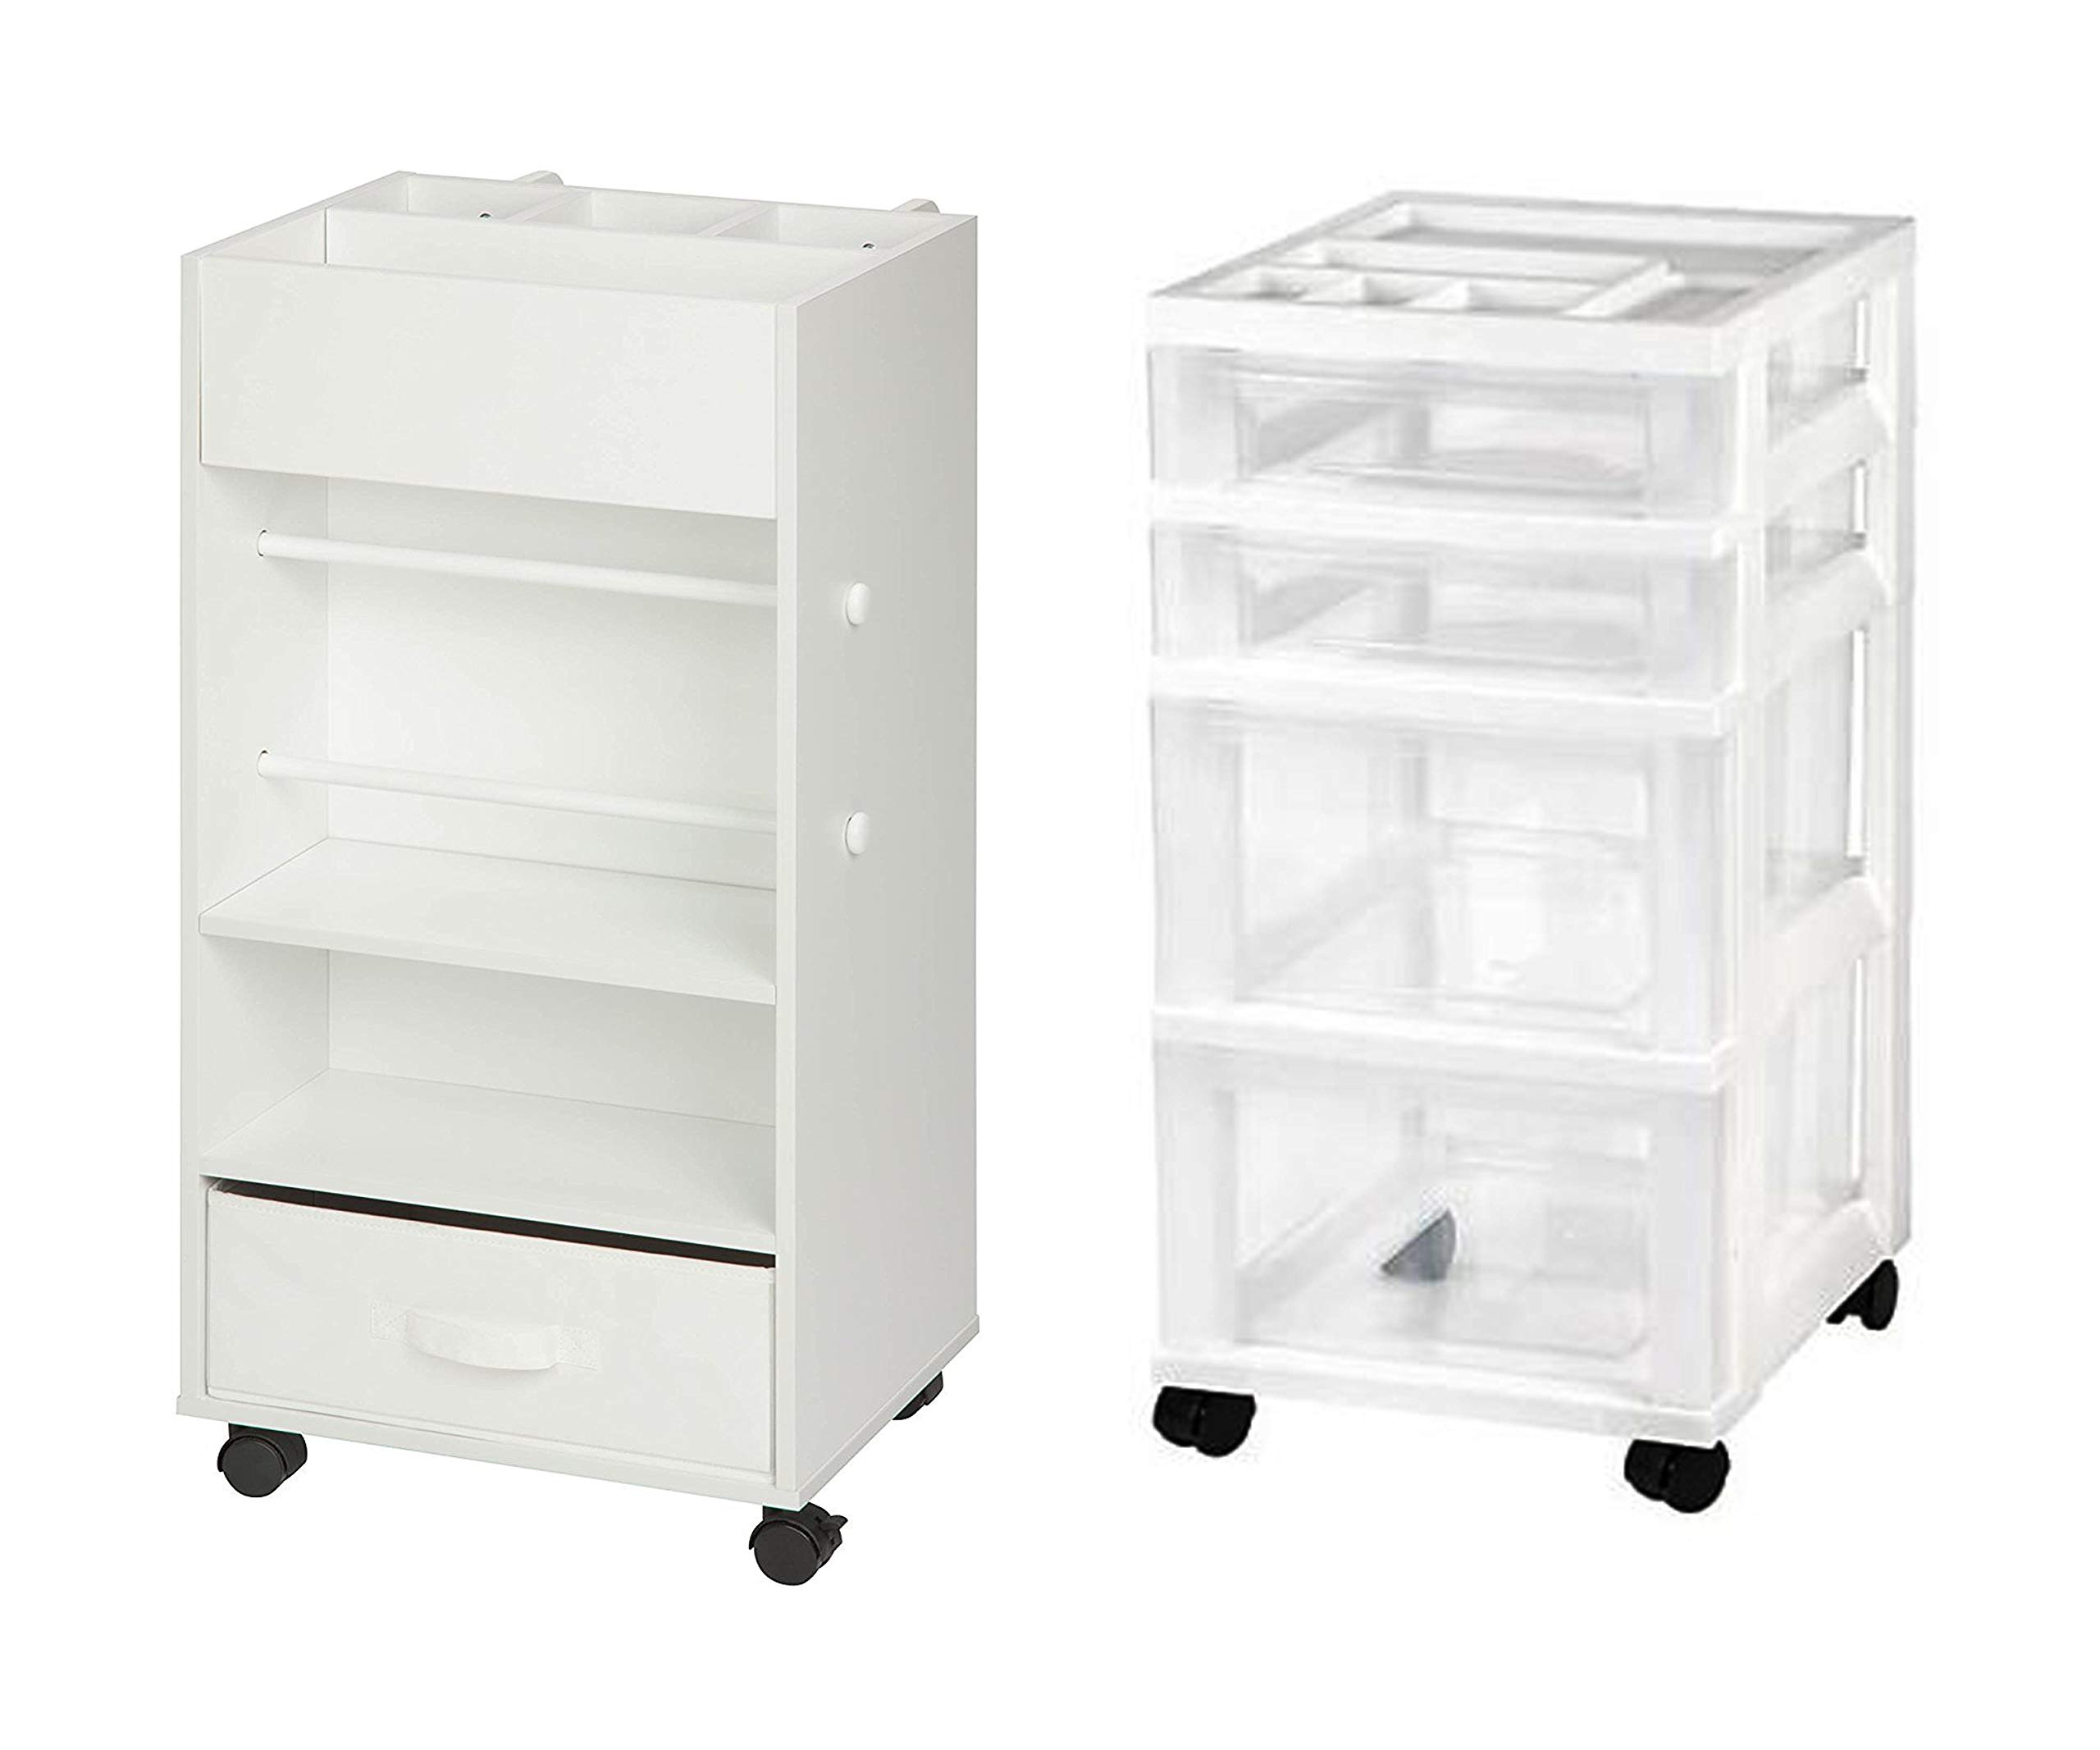 Honey Can Do Rolling Storage Cart with Fabric Drawer, White Bundle with IRIS 4-Drawer Storage Cart with Organizer Top, White by Honey Can Do + IRIS USA (Image #1)